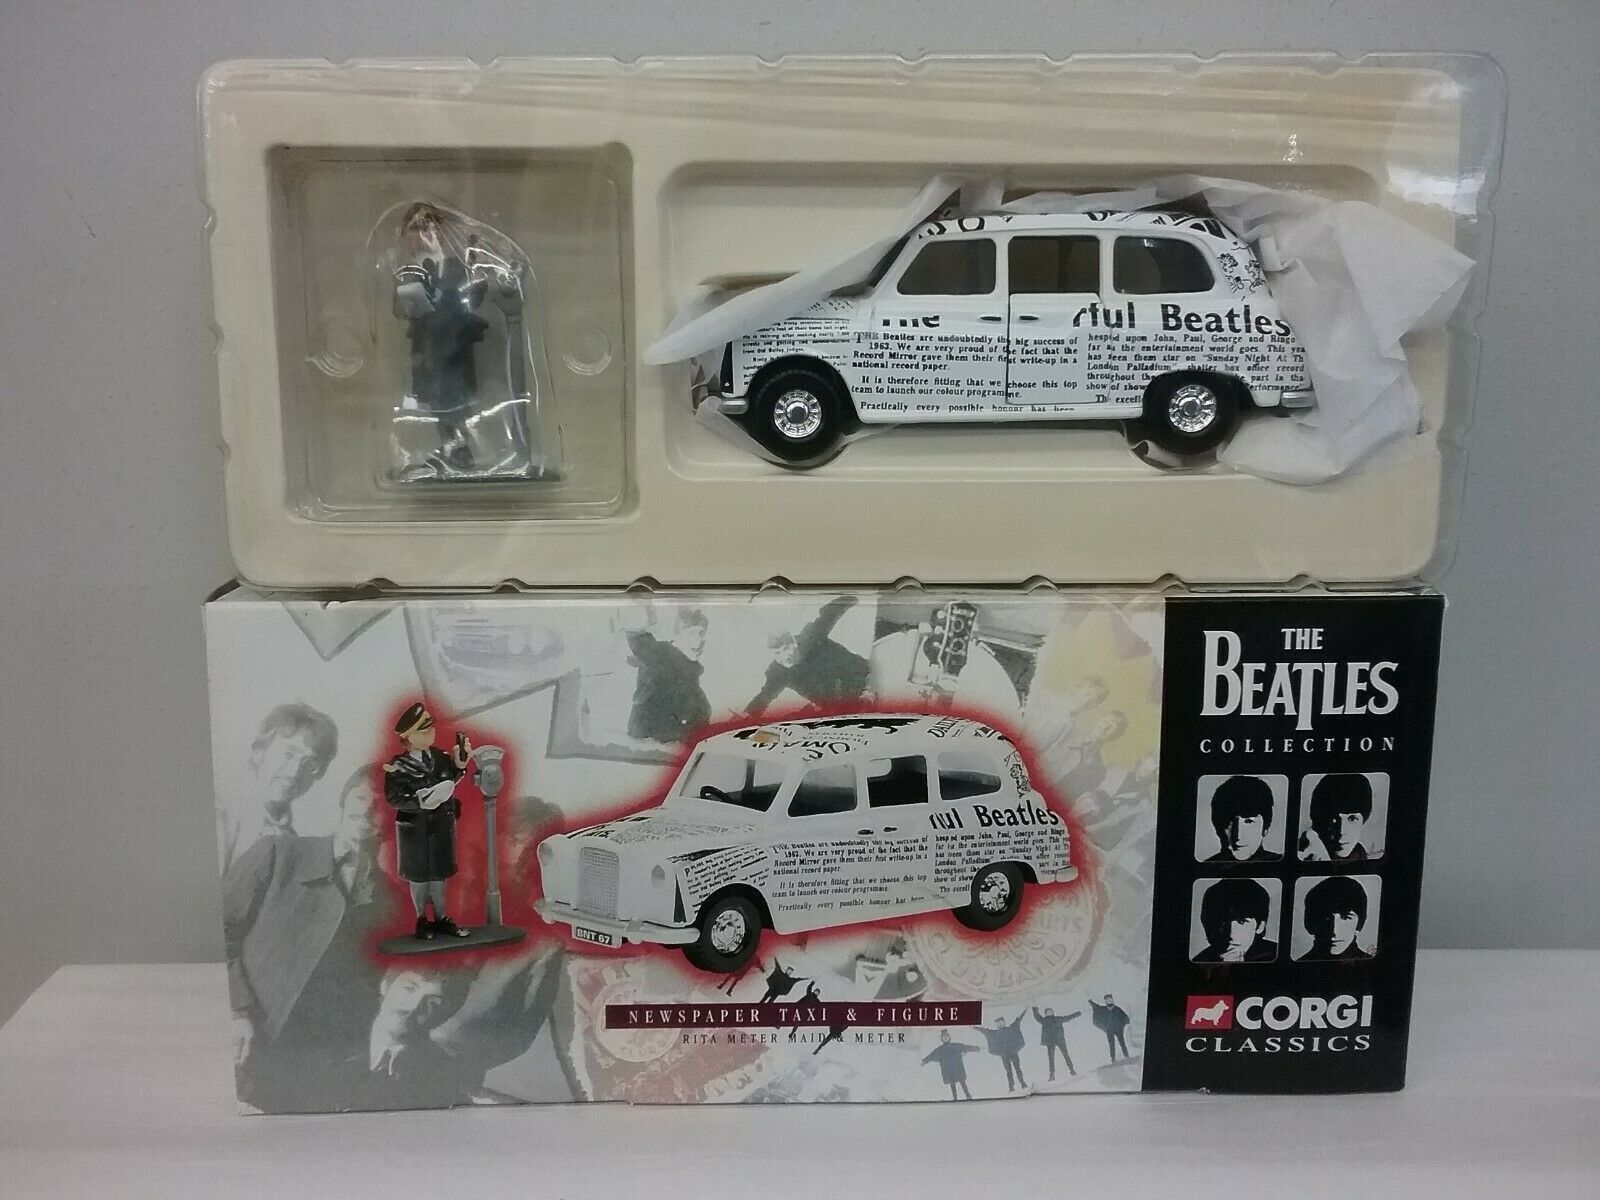 Corgi 58003 The Beatles samling Newspapper Taxi and Figur